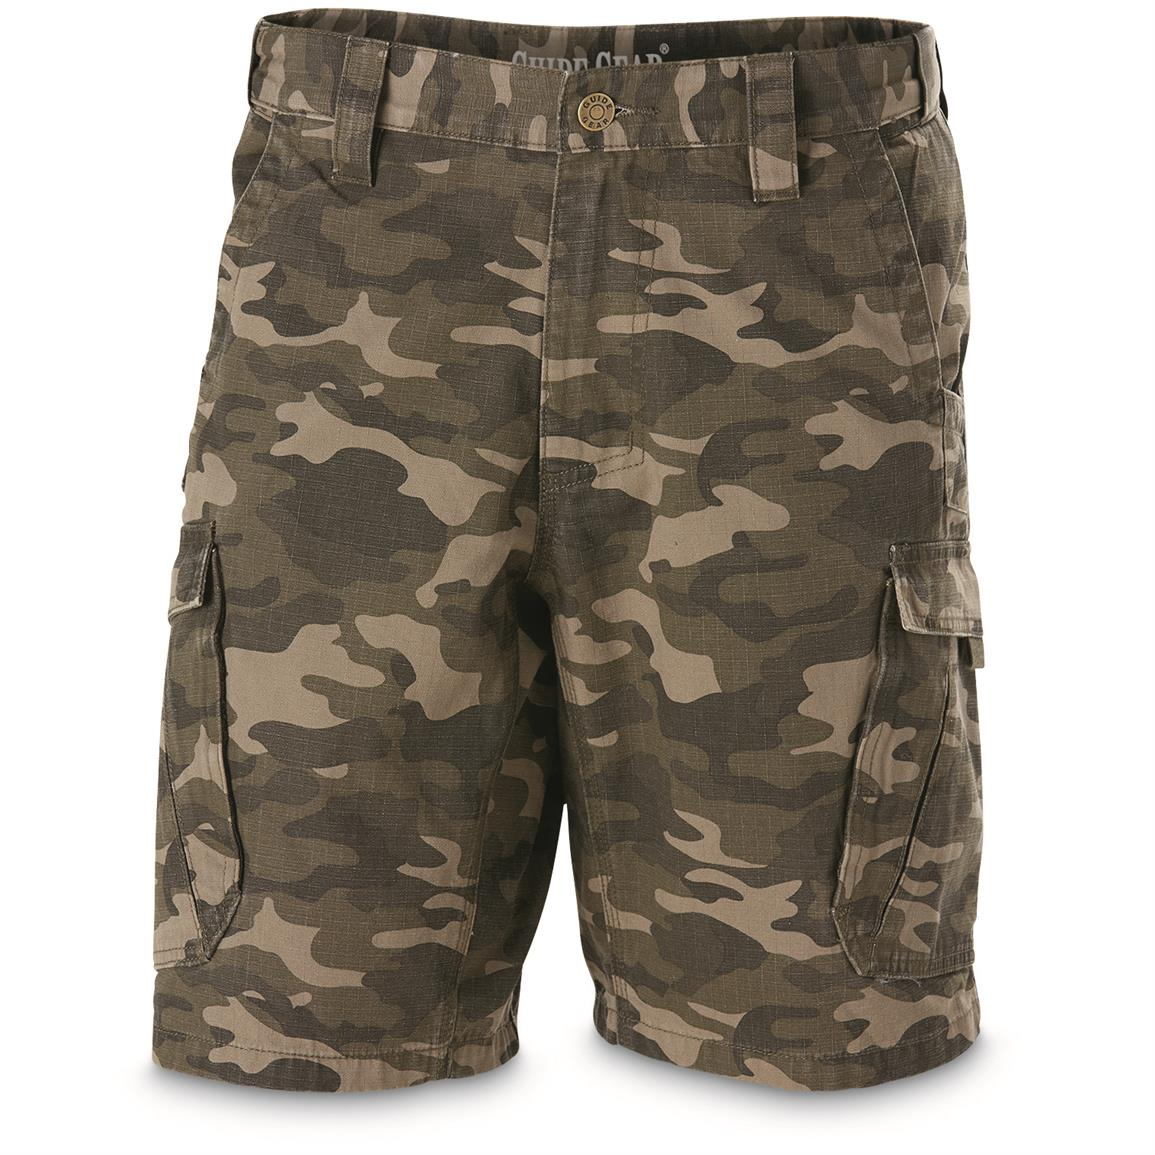 Guide Gear Men's Ripstop Cargo Shorts, Camo